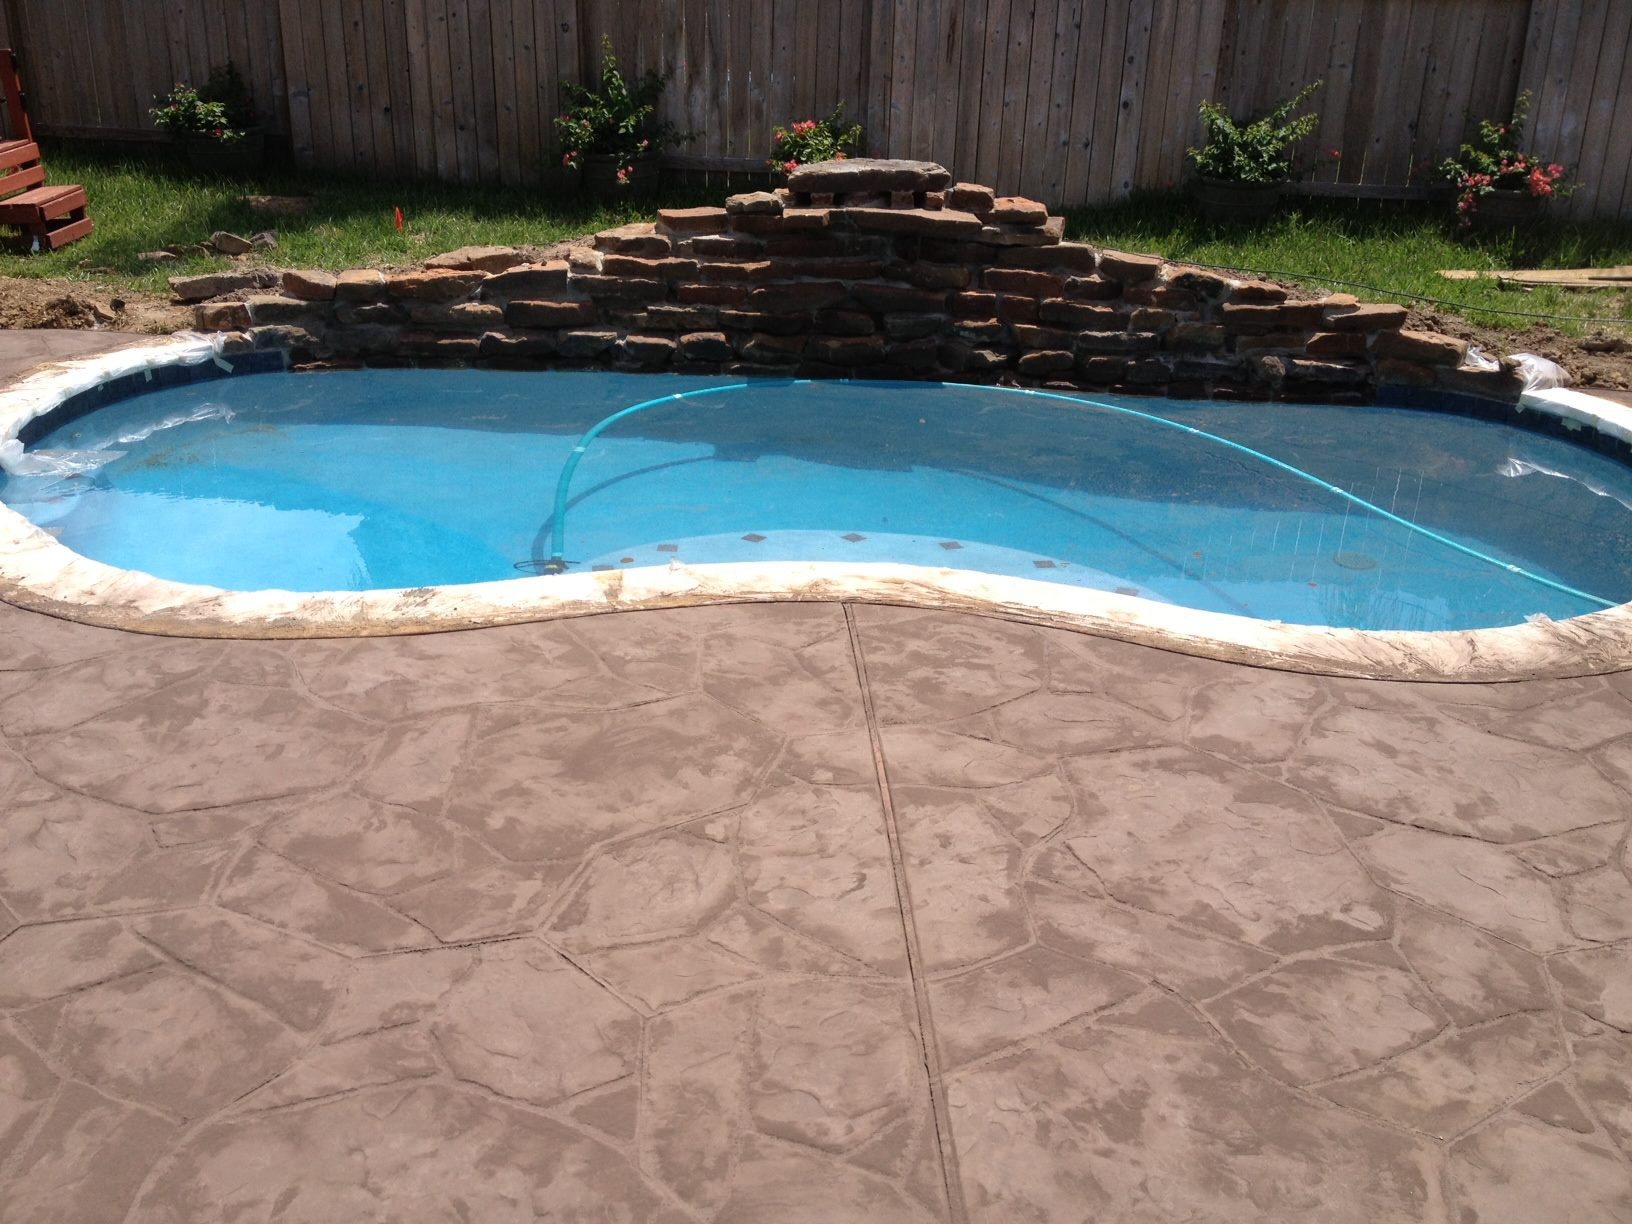 Silva Swimming Pool Patio Covers Katy TX Patio Builder